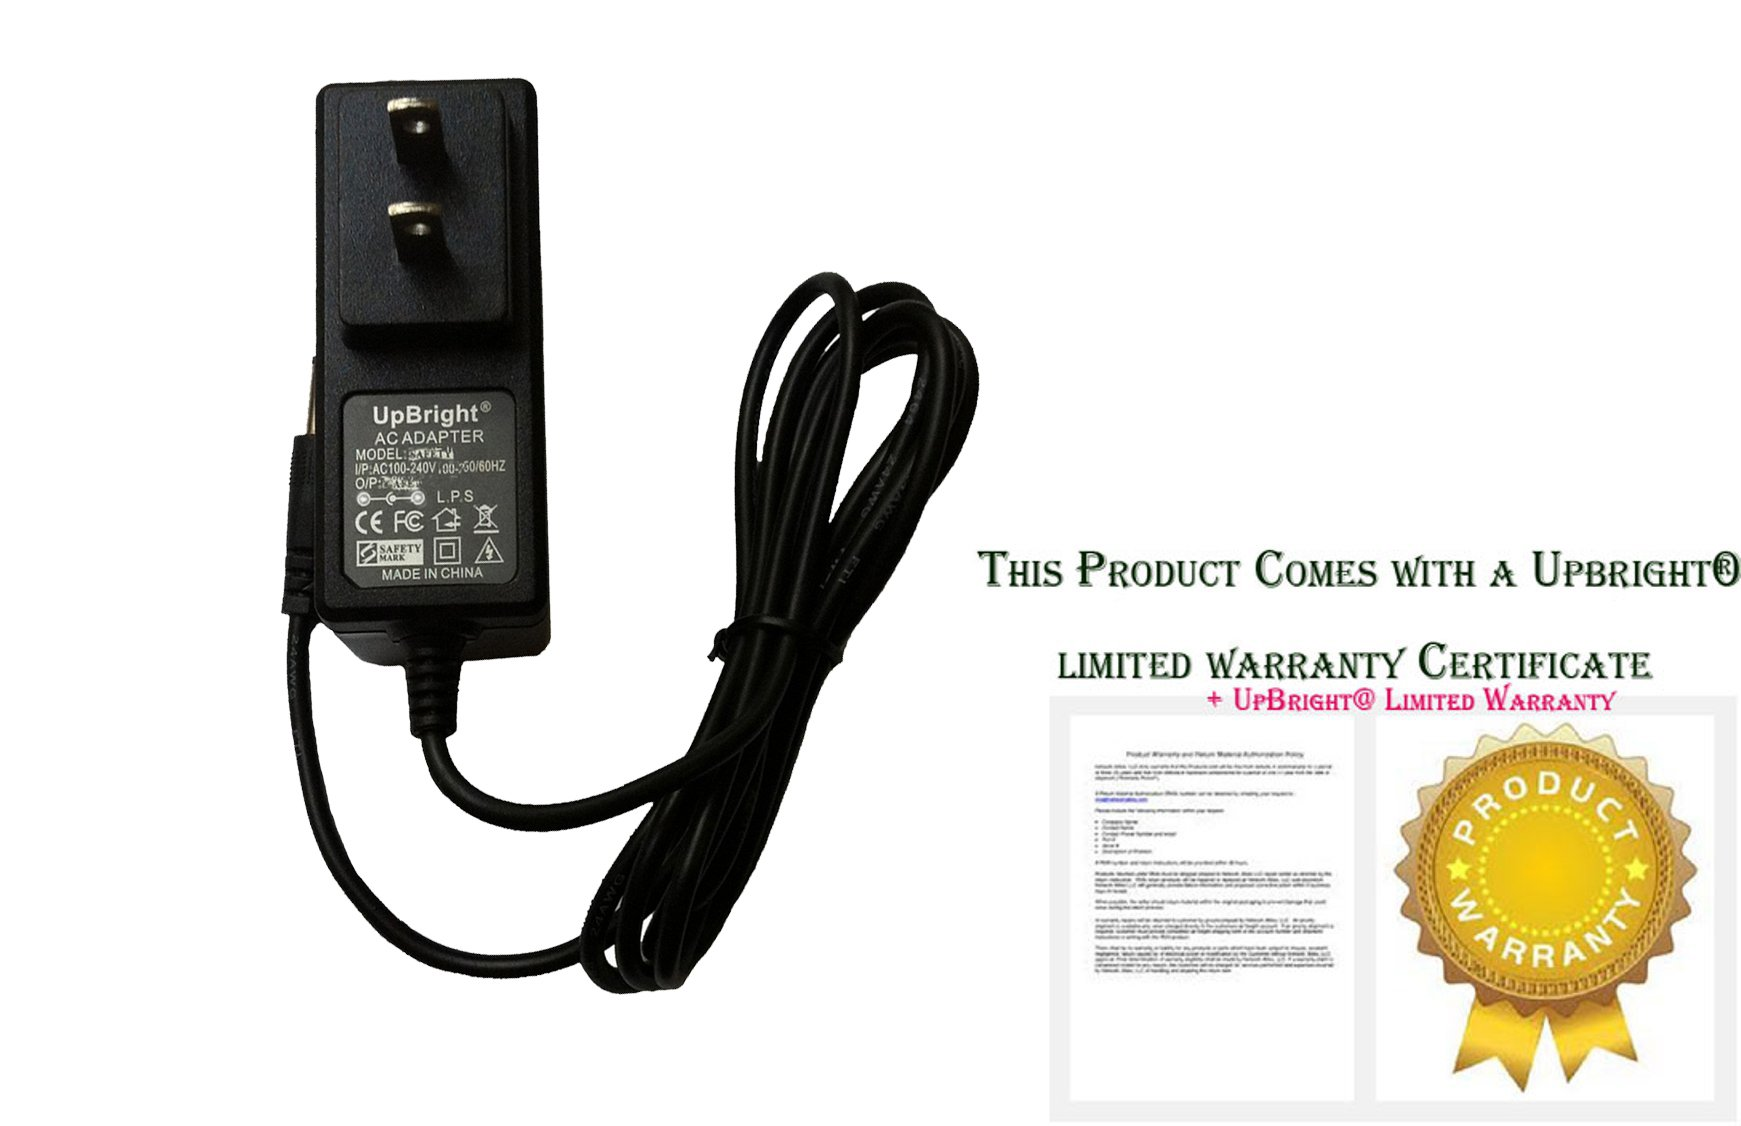 AC Adapter For Light Relief Infrared Pain Relief Device 90LR15LR01 LR150 LR100